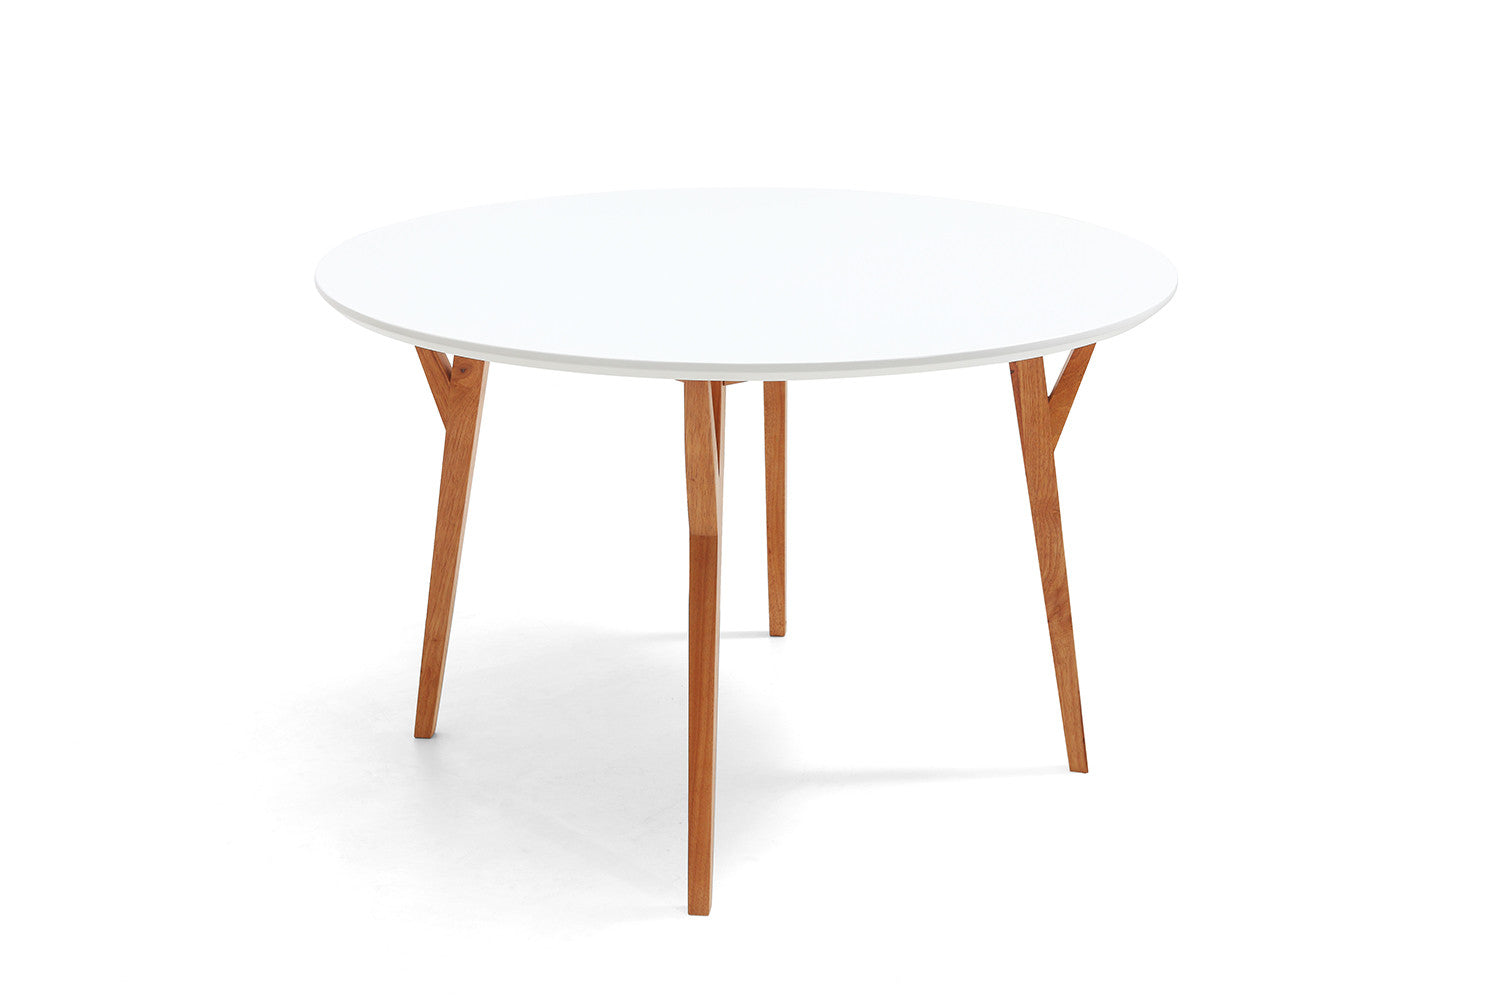 Table de salle manger ronde design scandinave moesa for Table ronde a manger